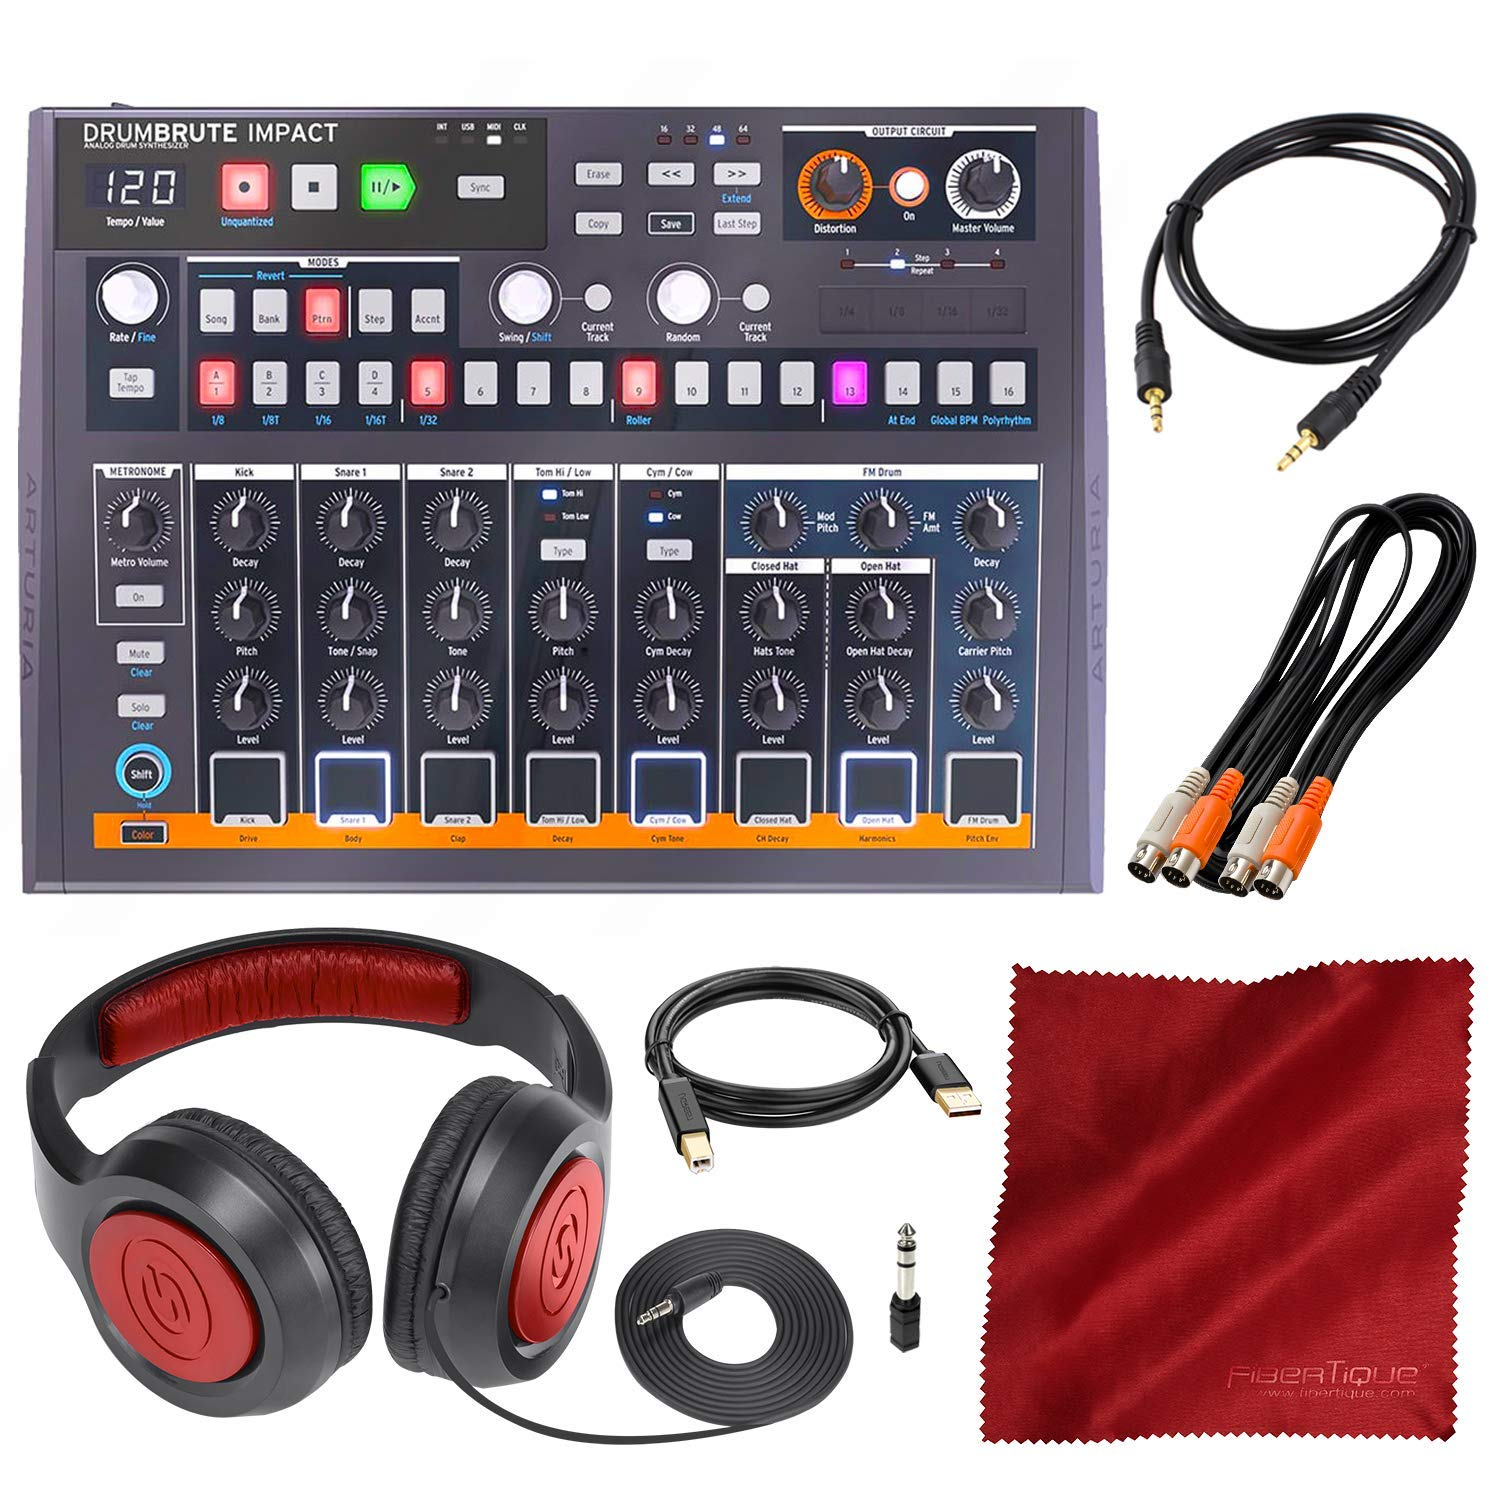 Arturia DrumBrute Impact Analog Drum Machine with Headphones and Accessory Bundle by Arturia